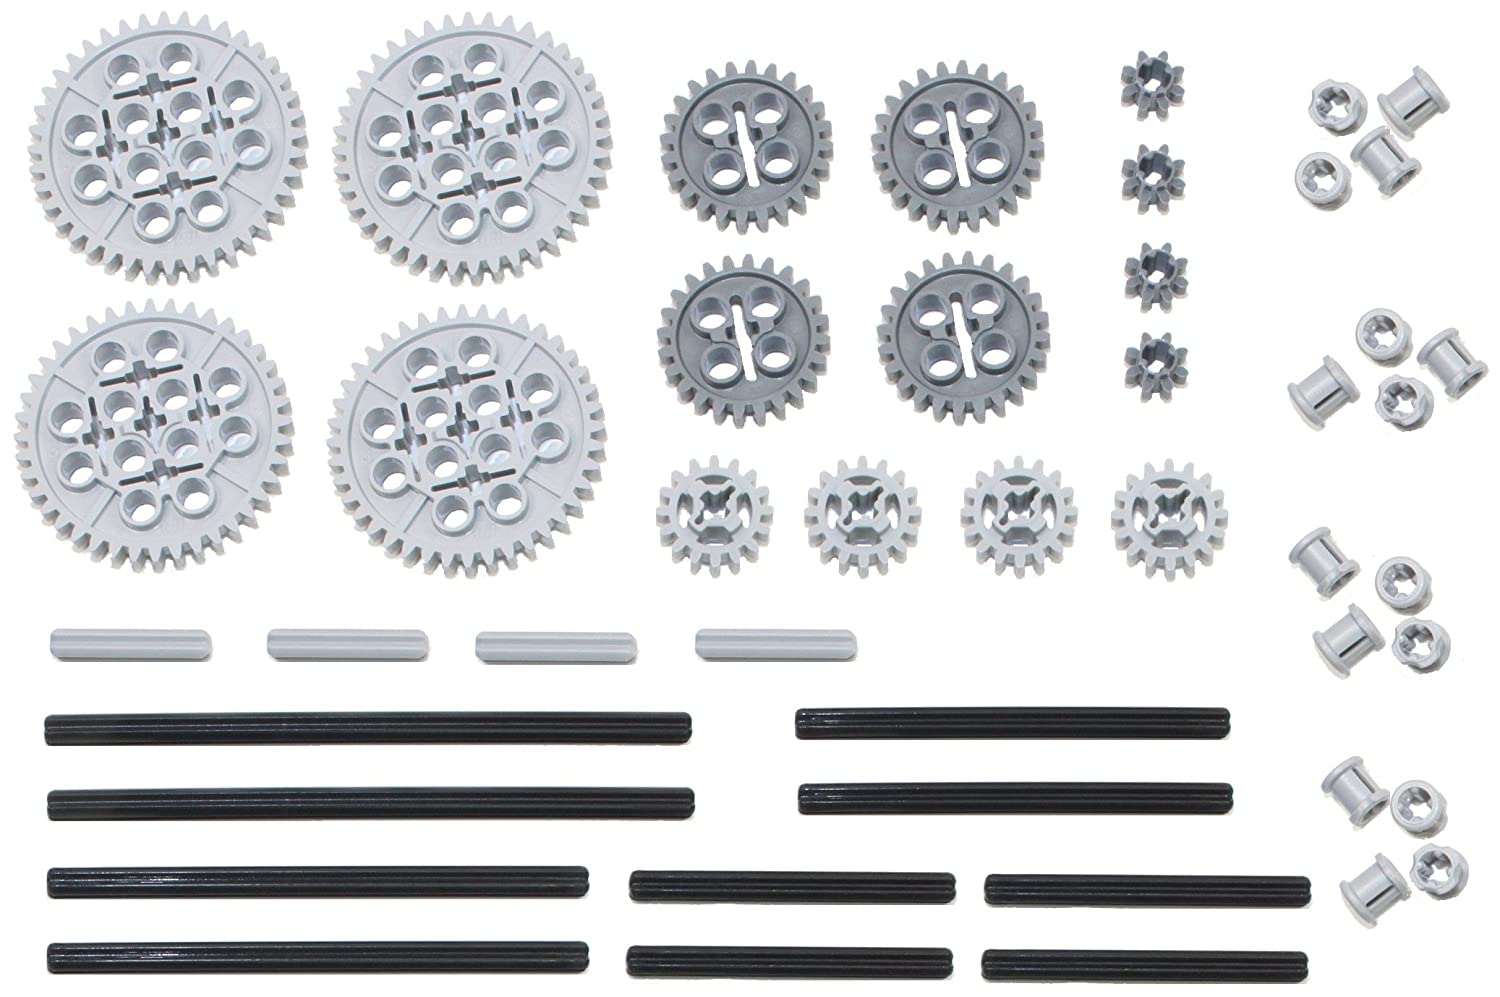 Works with Mindstorms NXT EV3 Bionicles and More Lego Creations! Lego 46pc Technic Gear /& axle Set